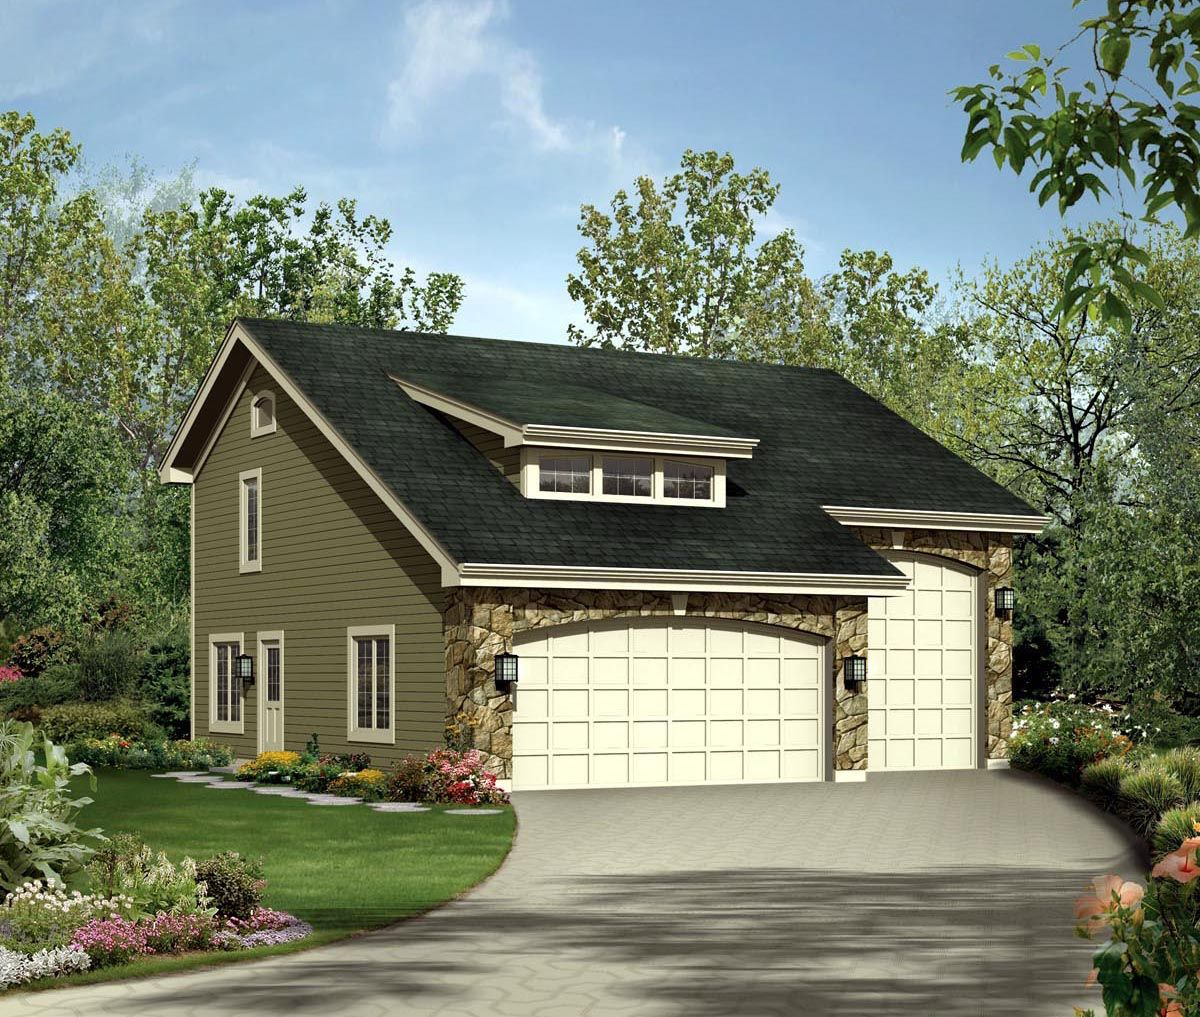 Image fromcdnimagesfamilyhomeplansplans9582795827 – Garage Plans With Rv Storage